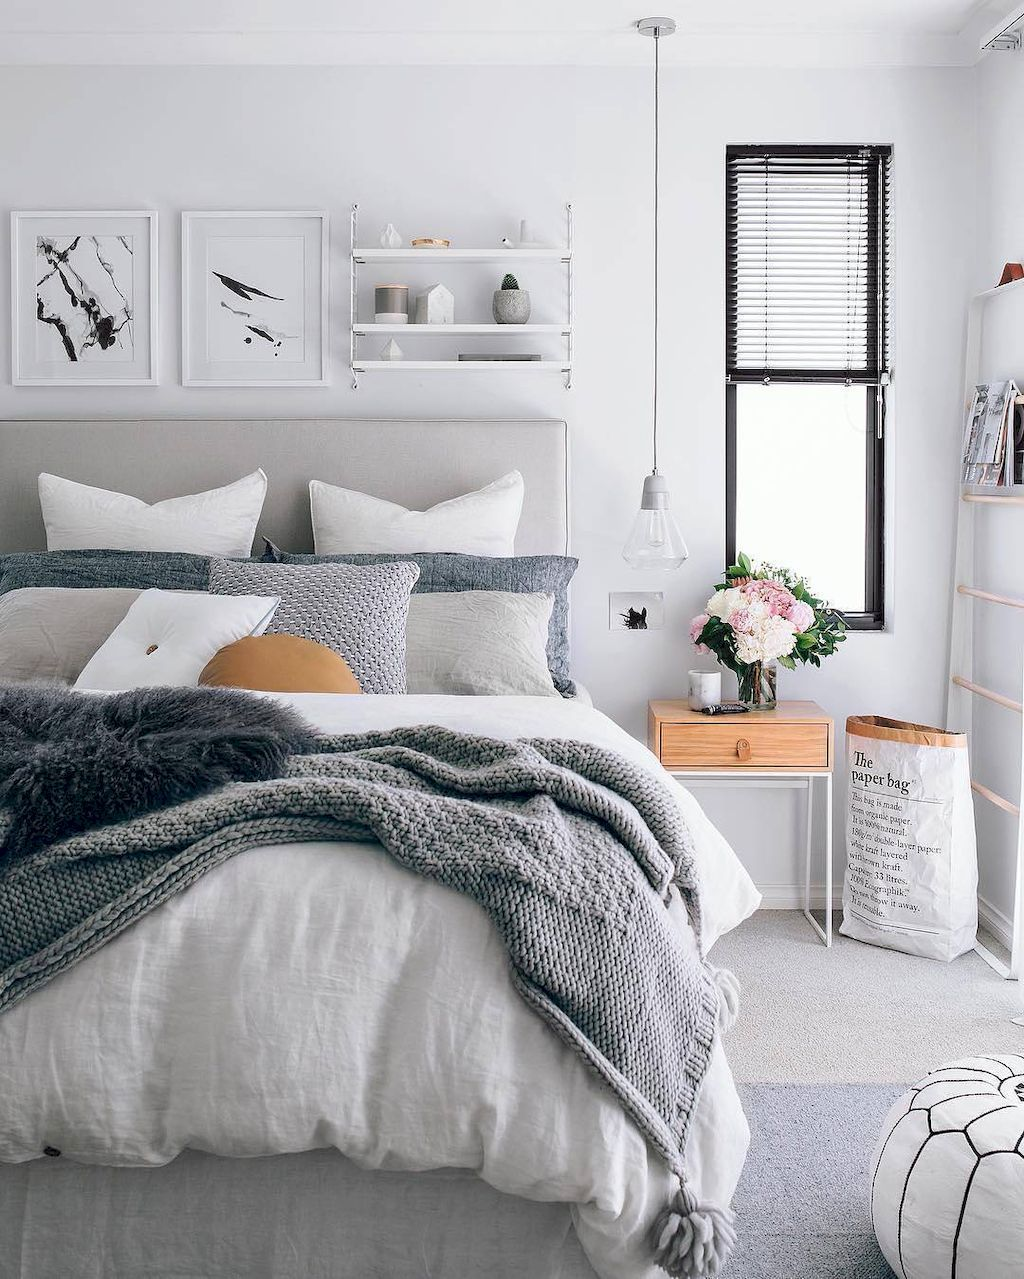 65 inspiring modern farmhouse bedroom decor ideas for Modern farmhouse bedroom